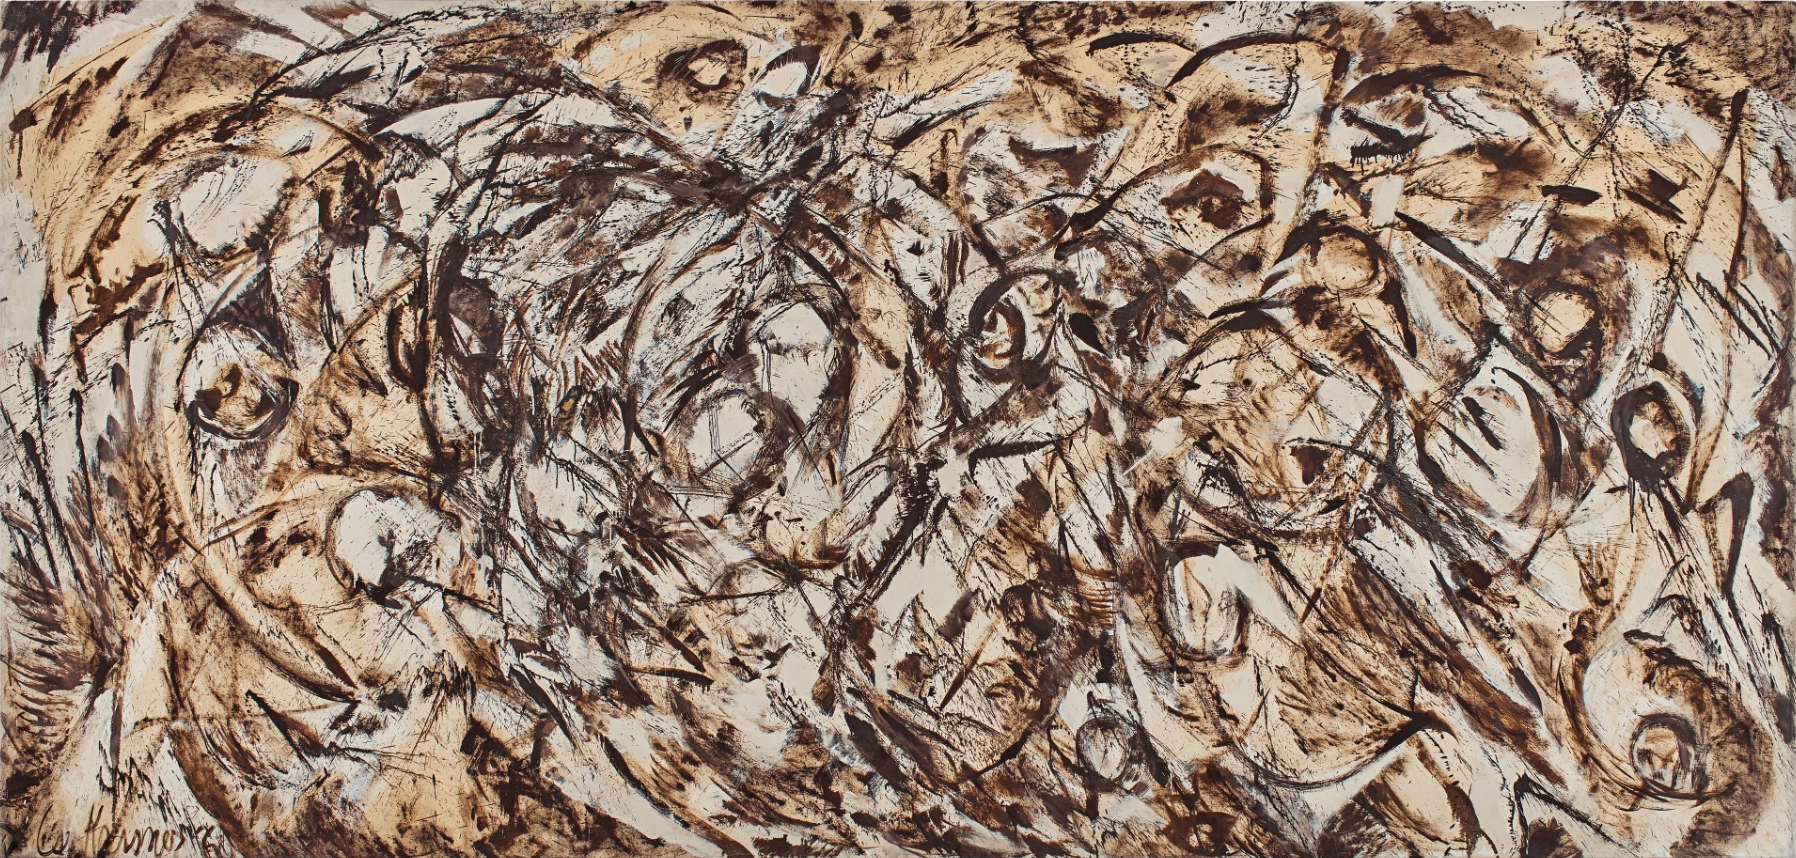 Lee Krasner's  The Eye Is the First Circle , 1960, sold for $11.7 million.